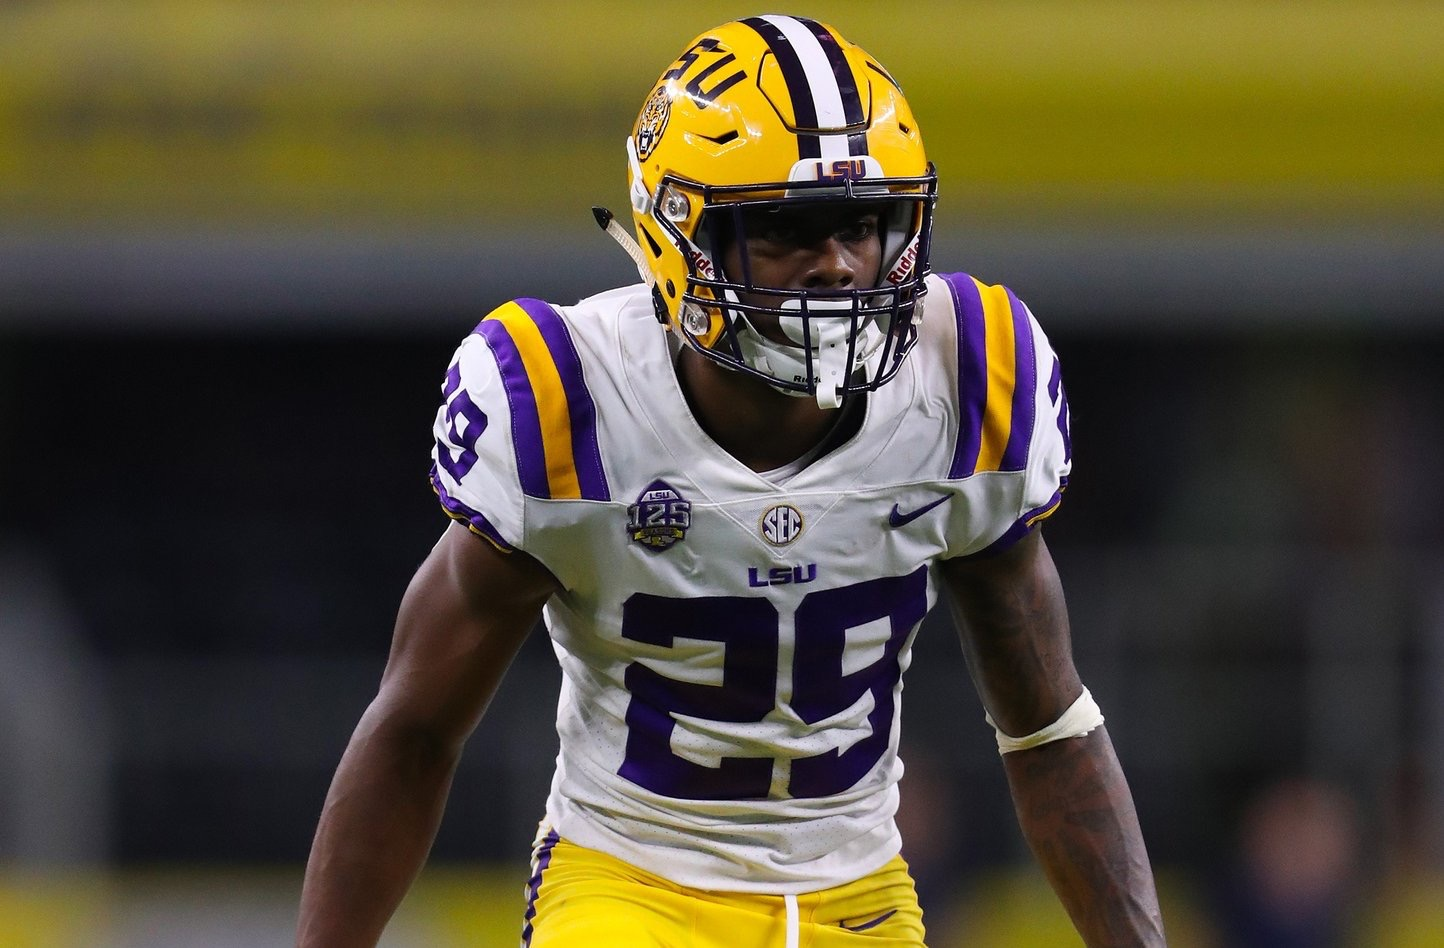 LSU CB Greedy Williams declares for the NFL Draft